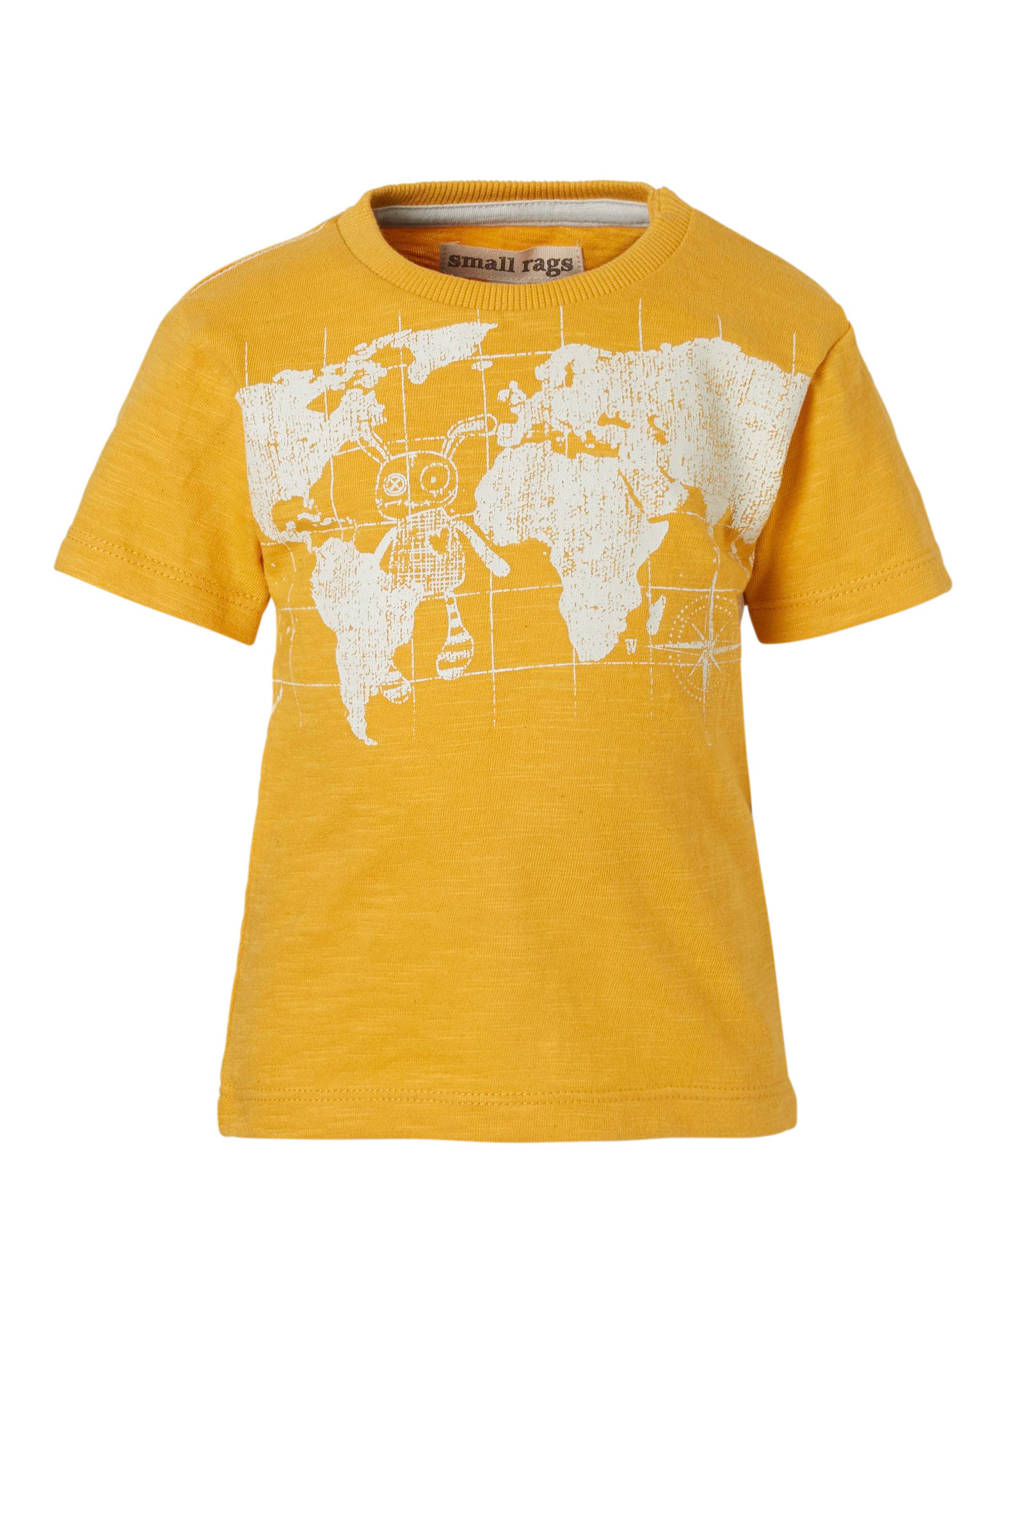 Small Rags T-shirt, Geel